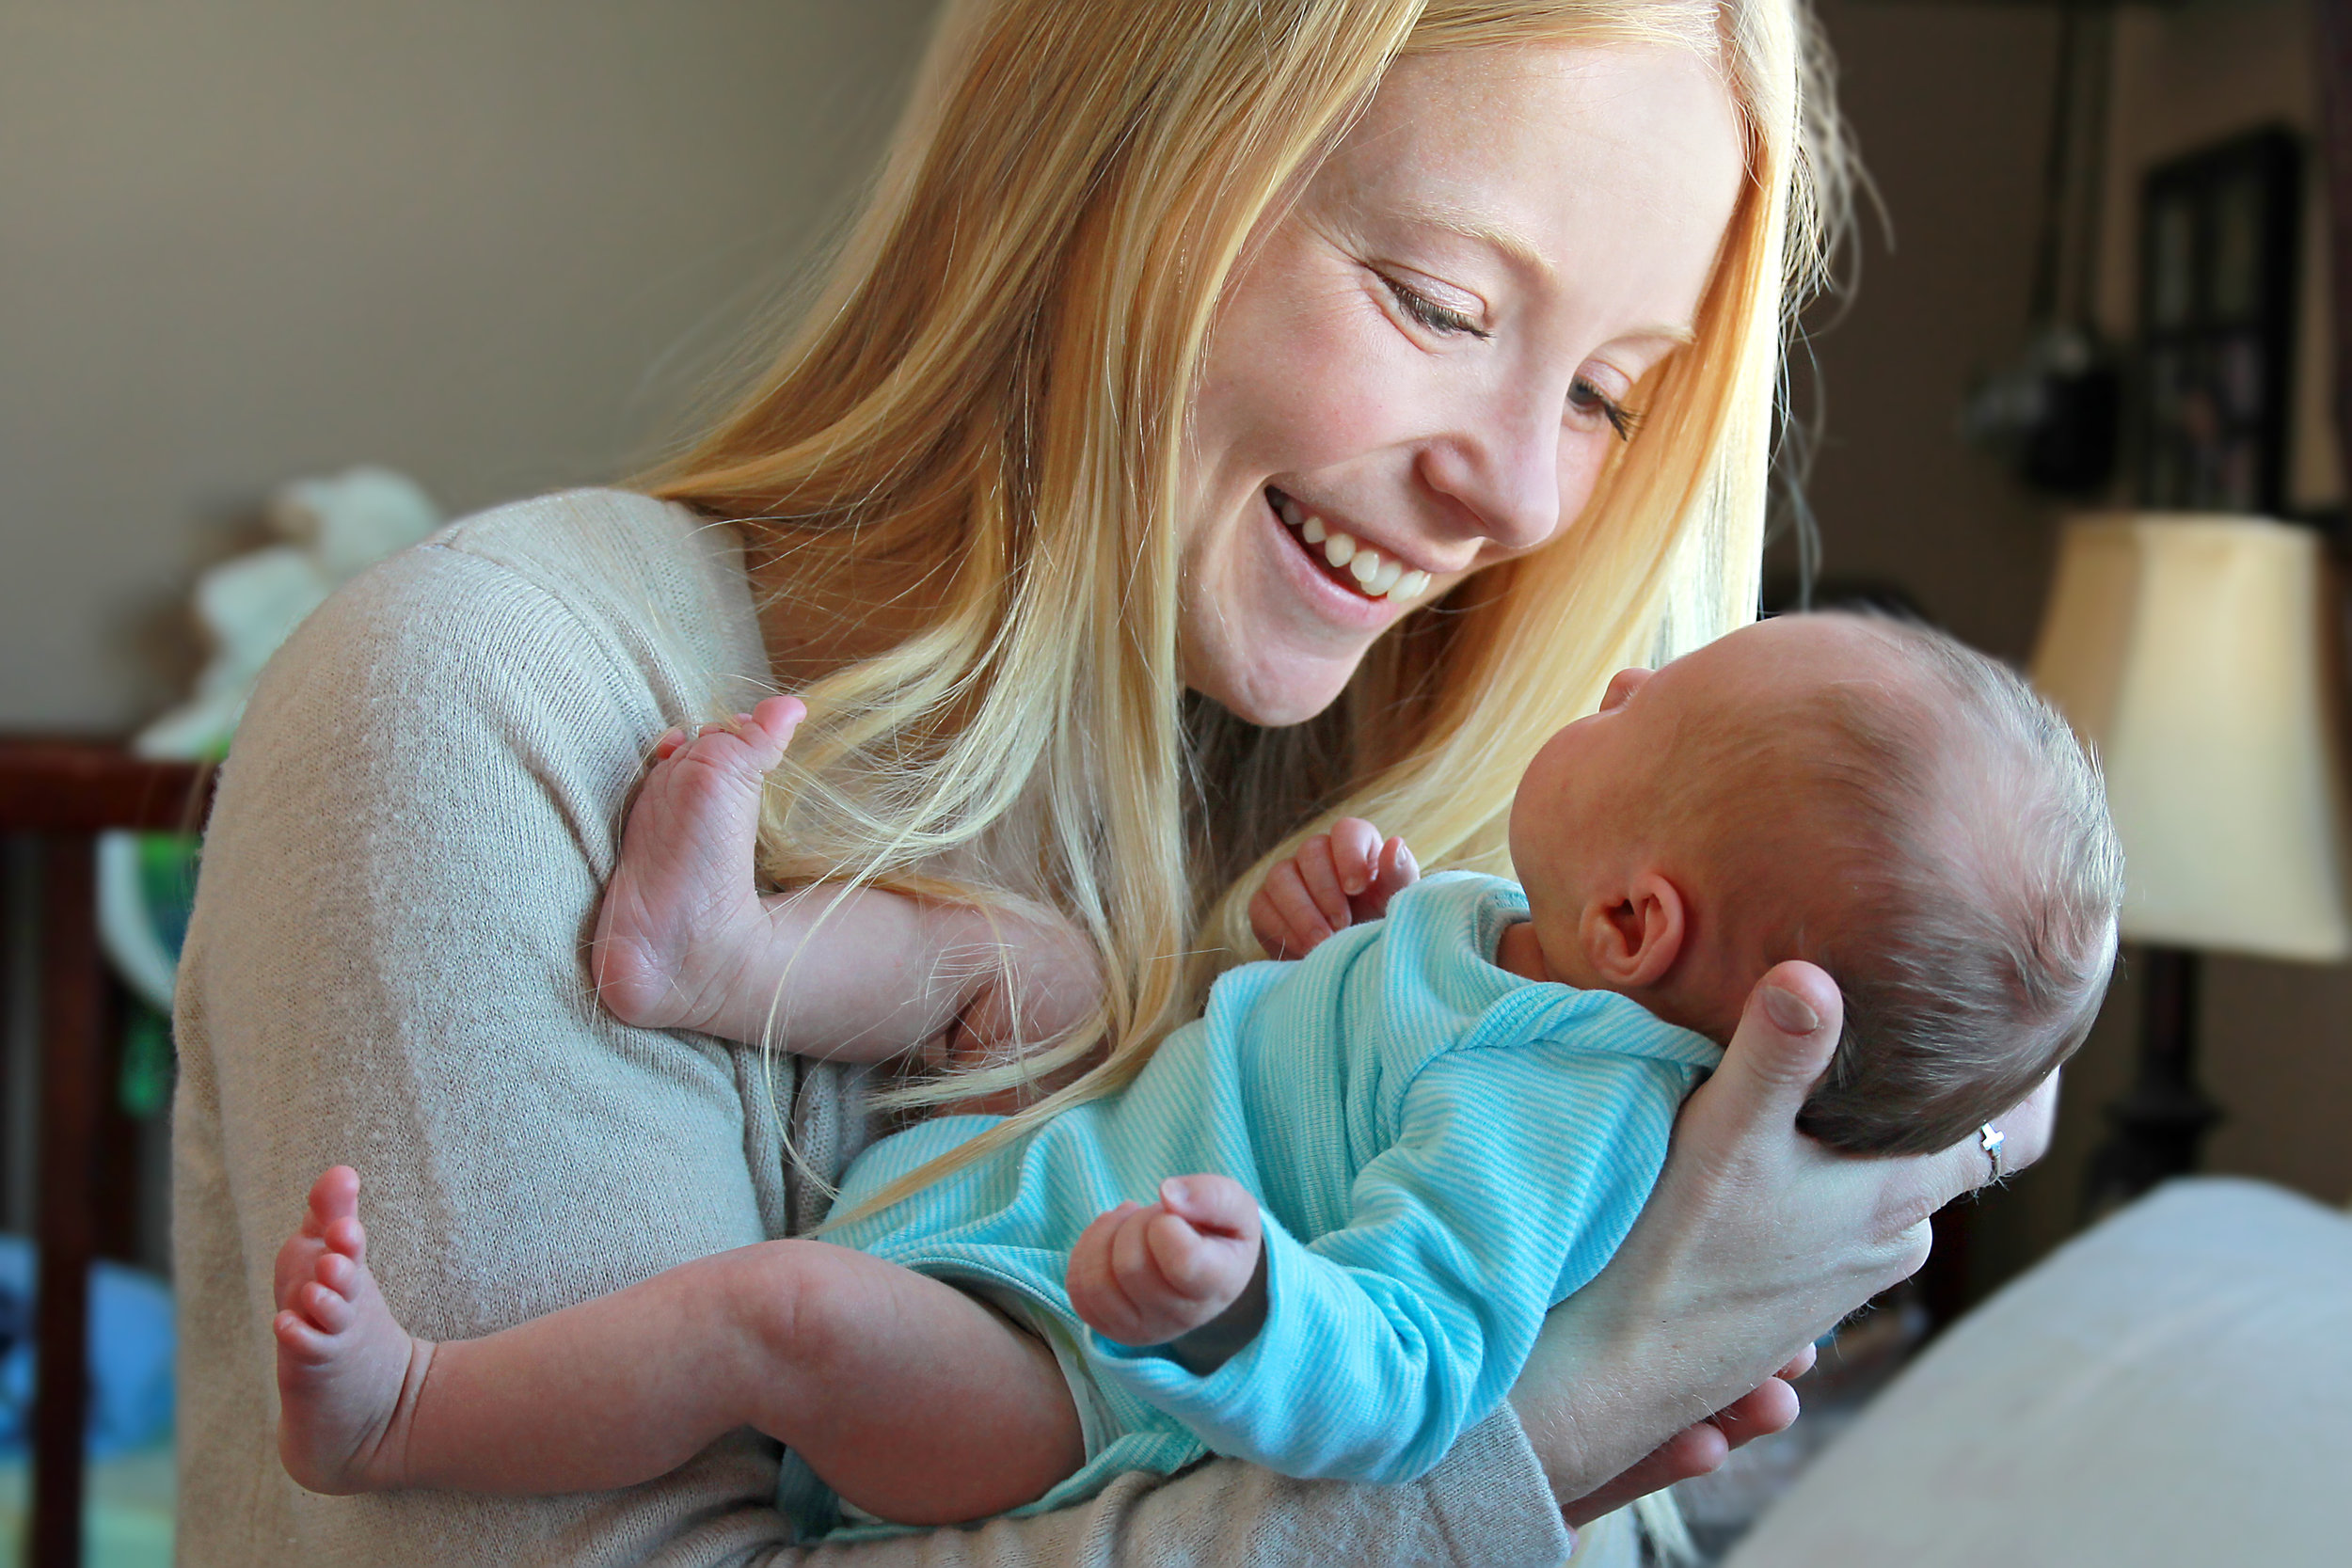 photodune-10909611-young-mother-smiling-at-newborn-baby-in-home-nursery-l.jpg